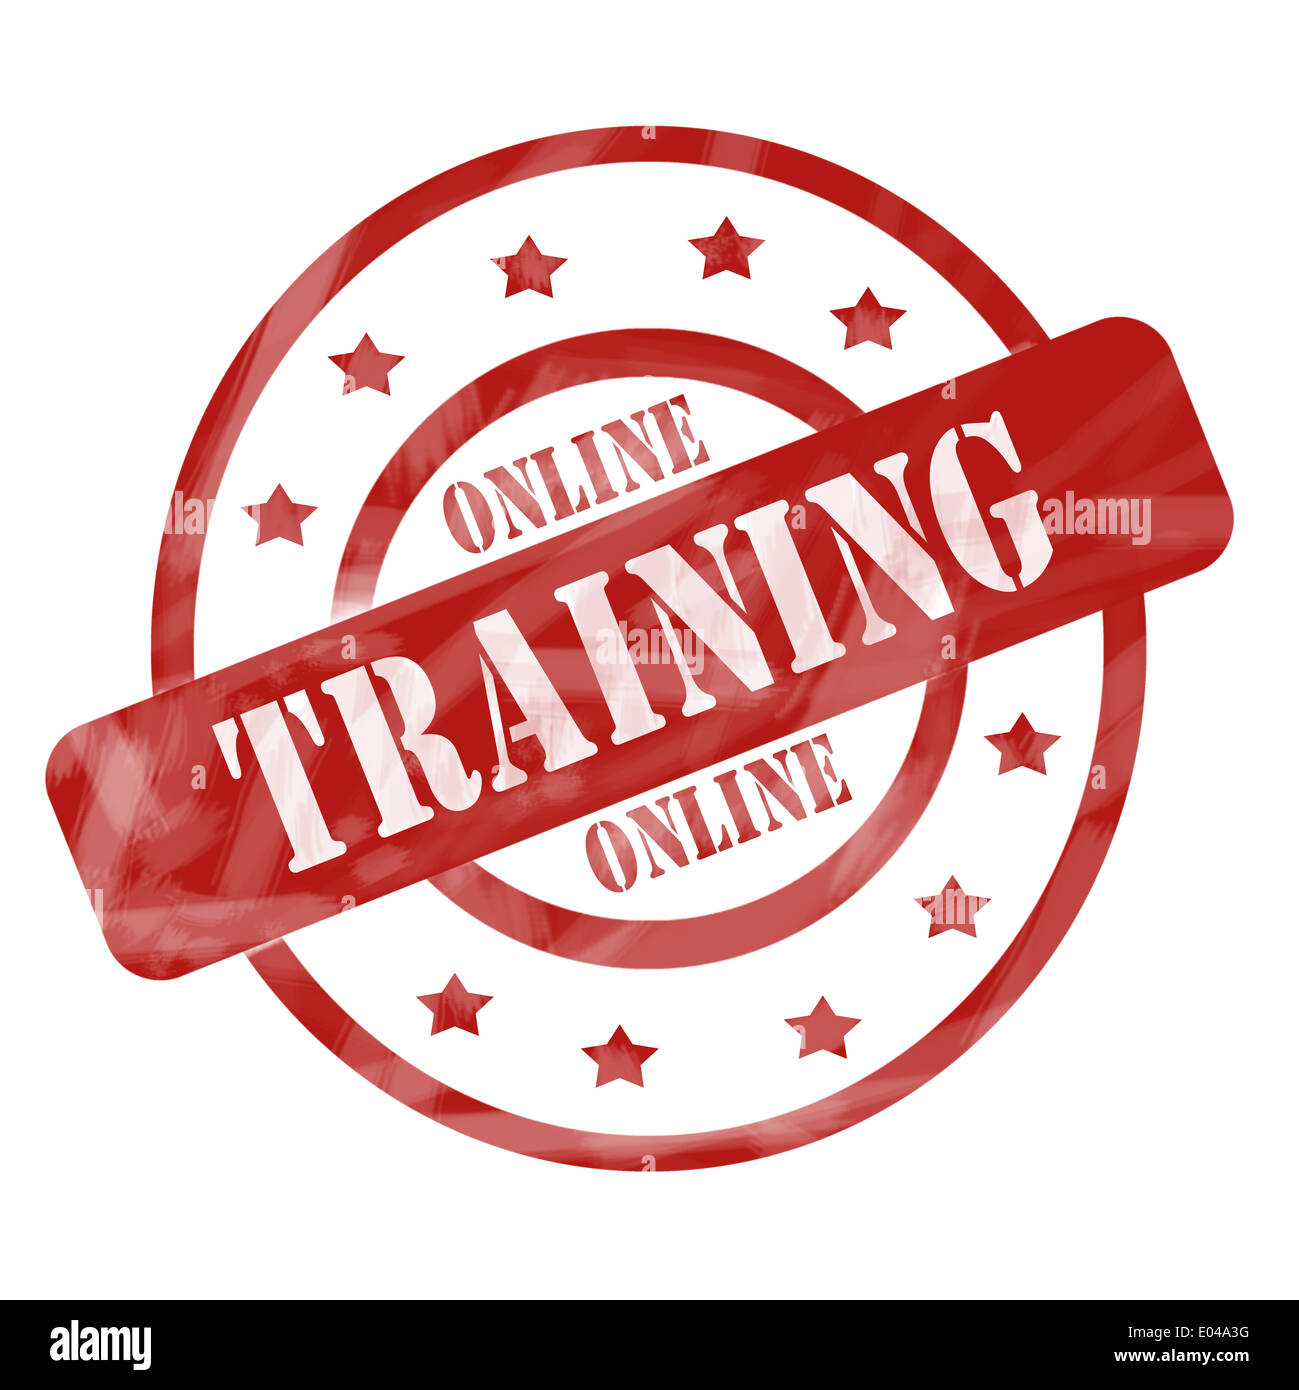 A Red Ink Weathered Roughed Up Circles And Stars Stamp Design With The Words ONLINE TRAINING On It Making Great Concept